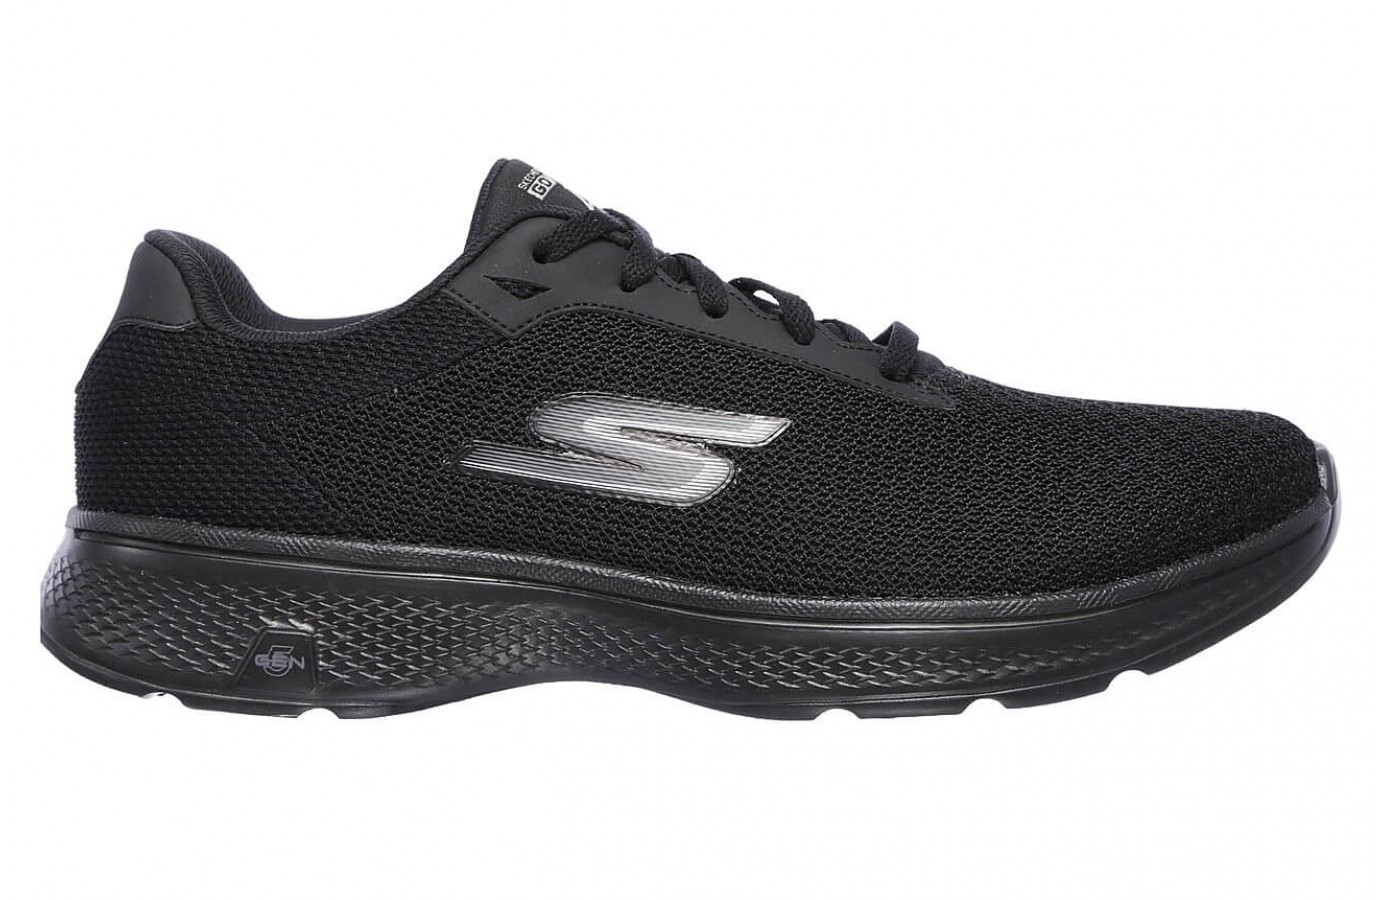 Skechers GOwalk 4